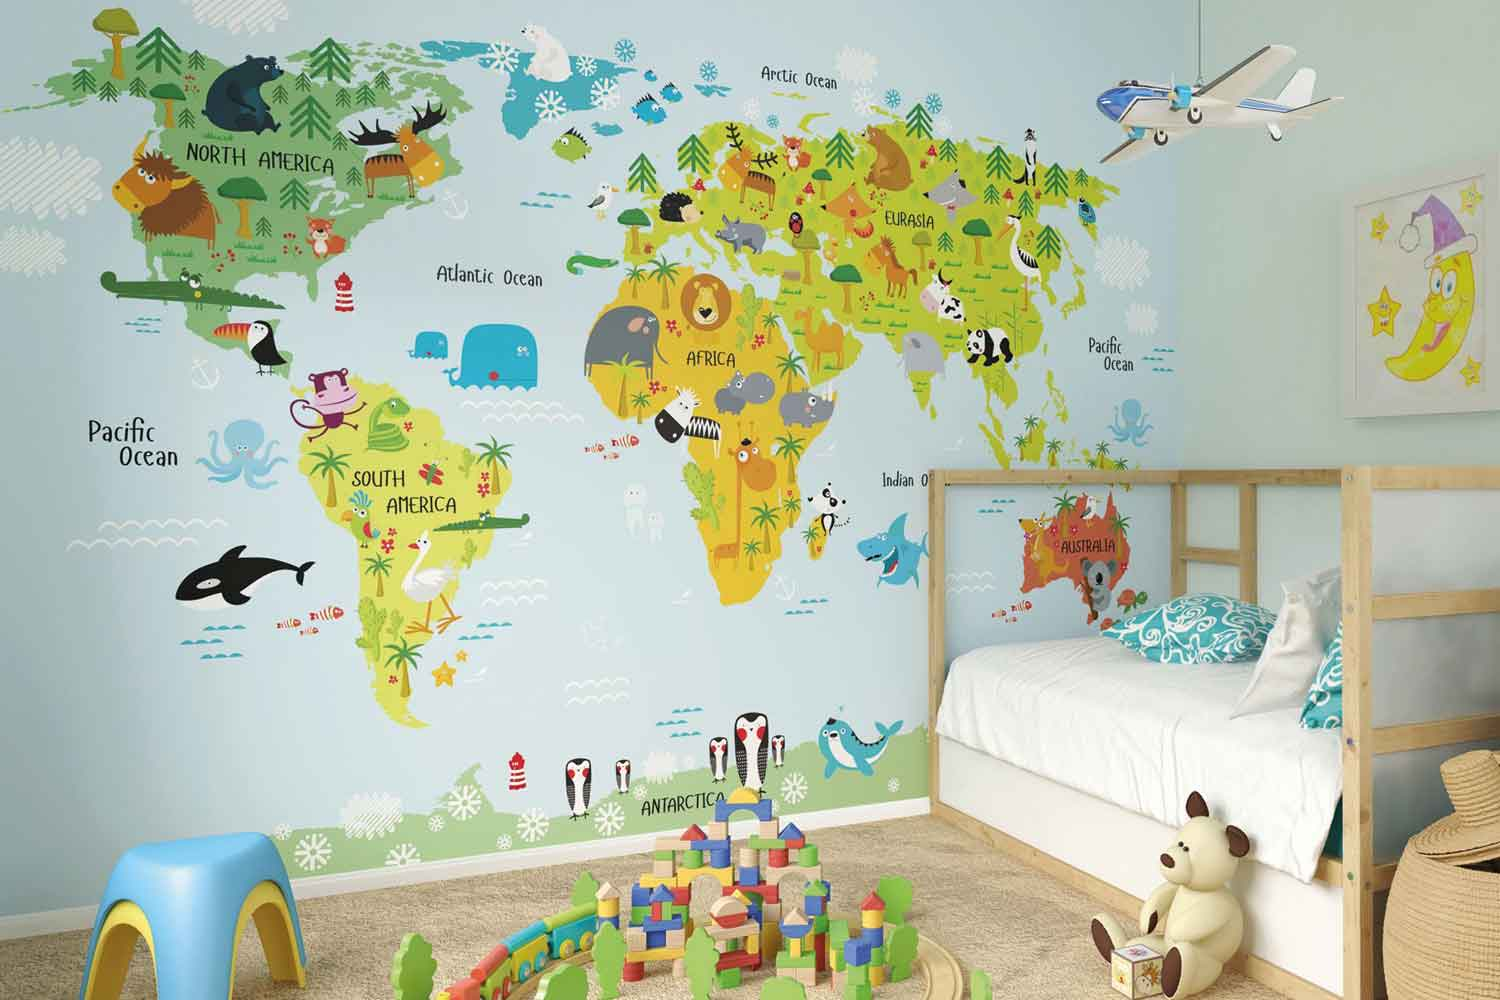 3 Kids Bedroom Decorating Ideas Grown Ups Will Want To Steal Home Beautiful Magazine Australia